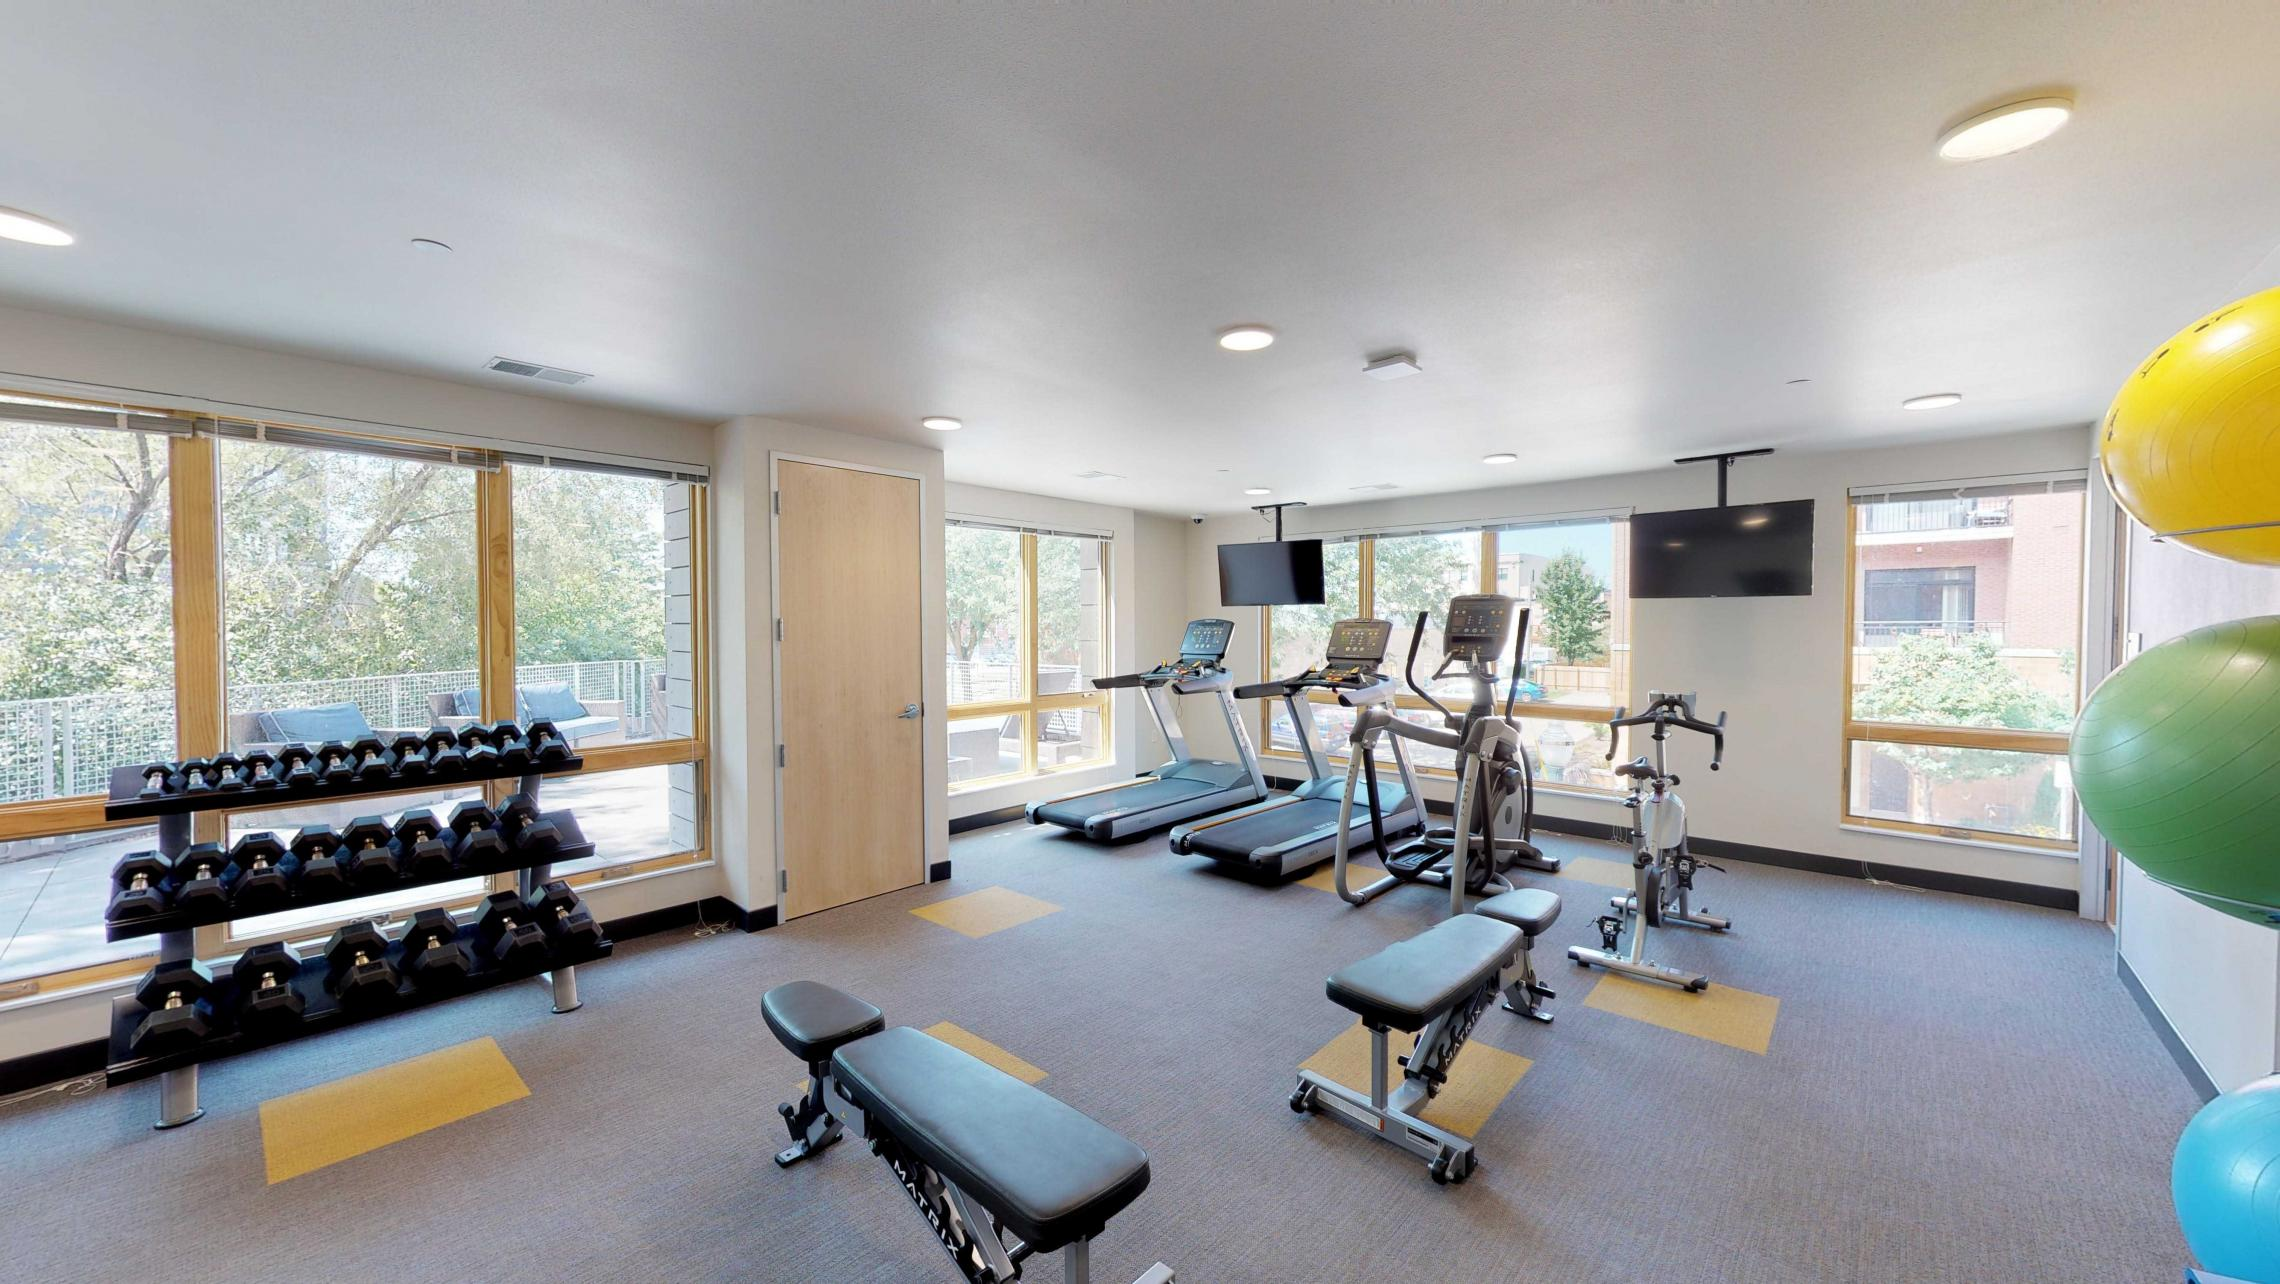 Quarter-Row-Fitness-Center-Gym-Apartments-Downtown-Madison-Luxury-Upscale-Workout